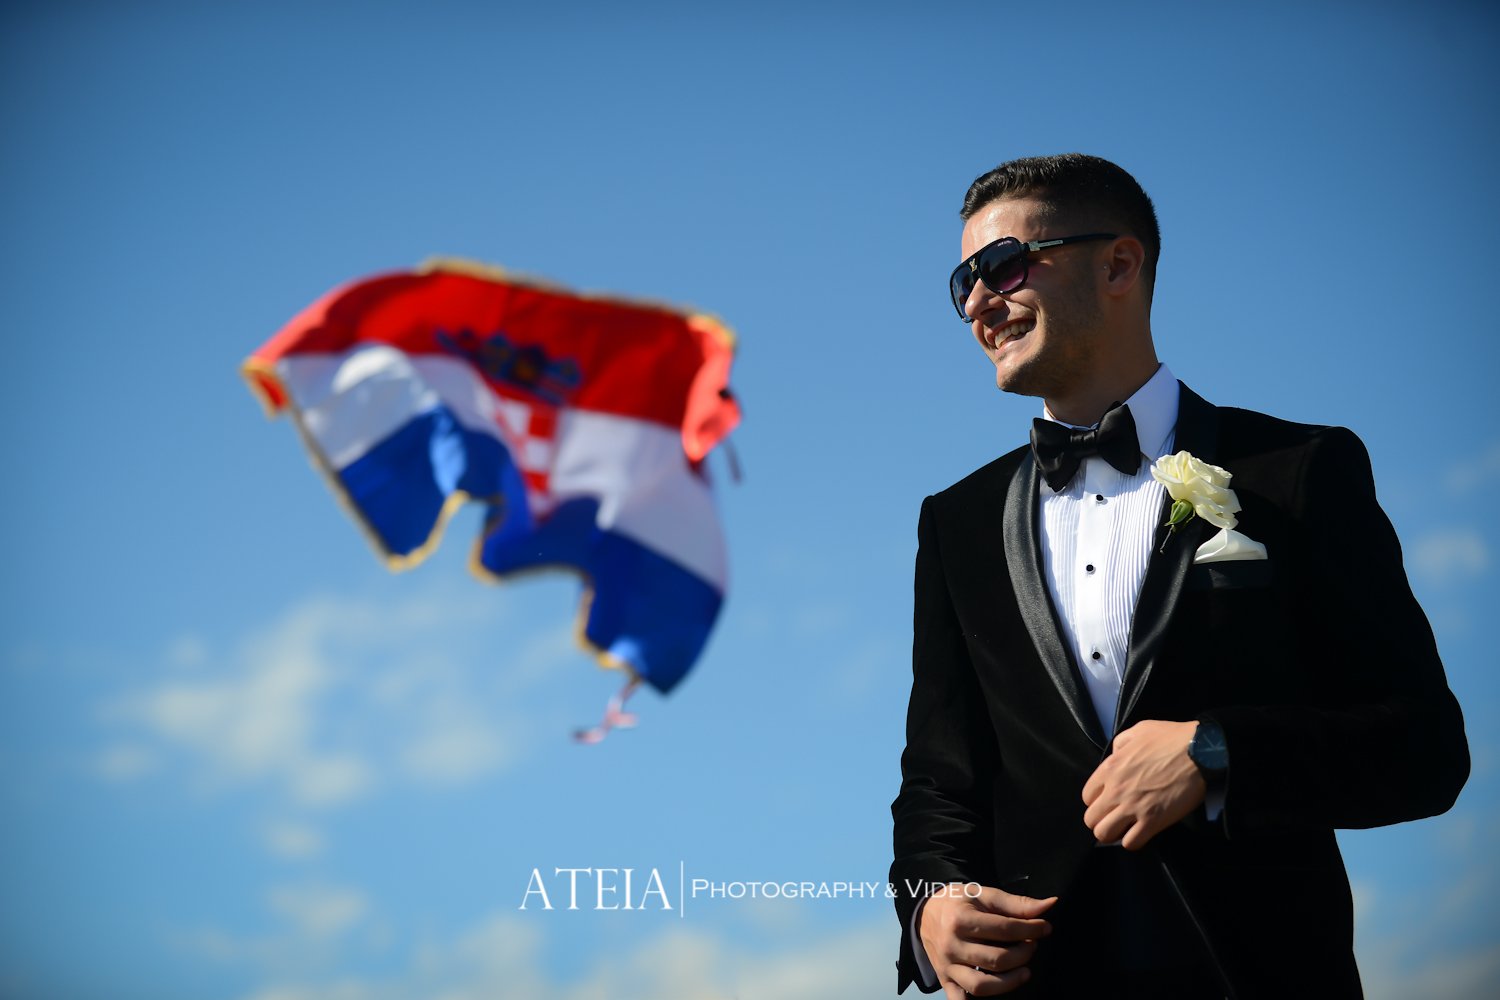 Wedding Photography Docklands - Aerial - ATEIA Photography & Video